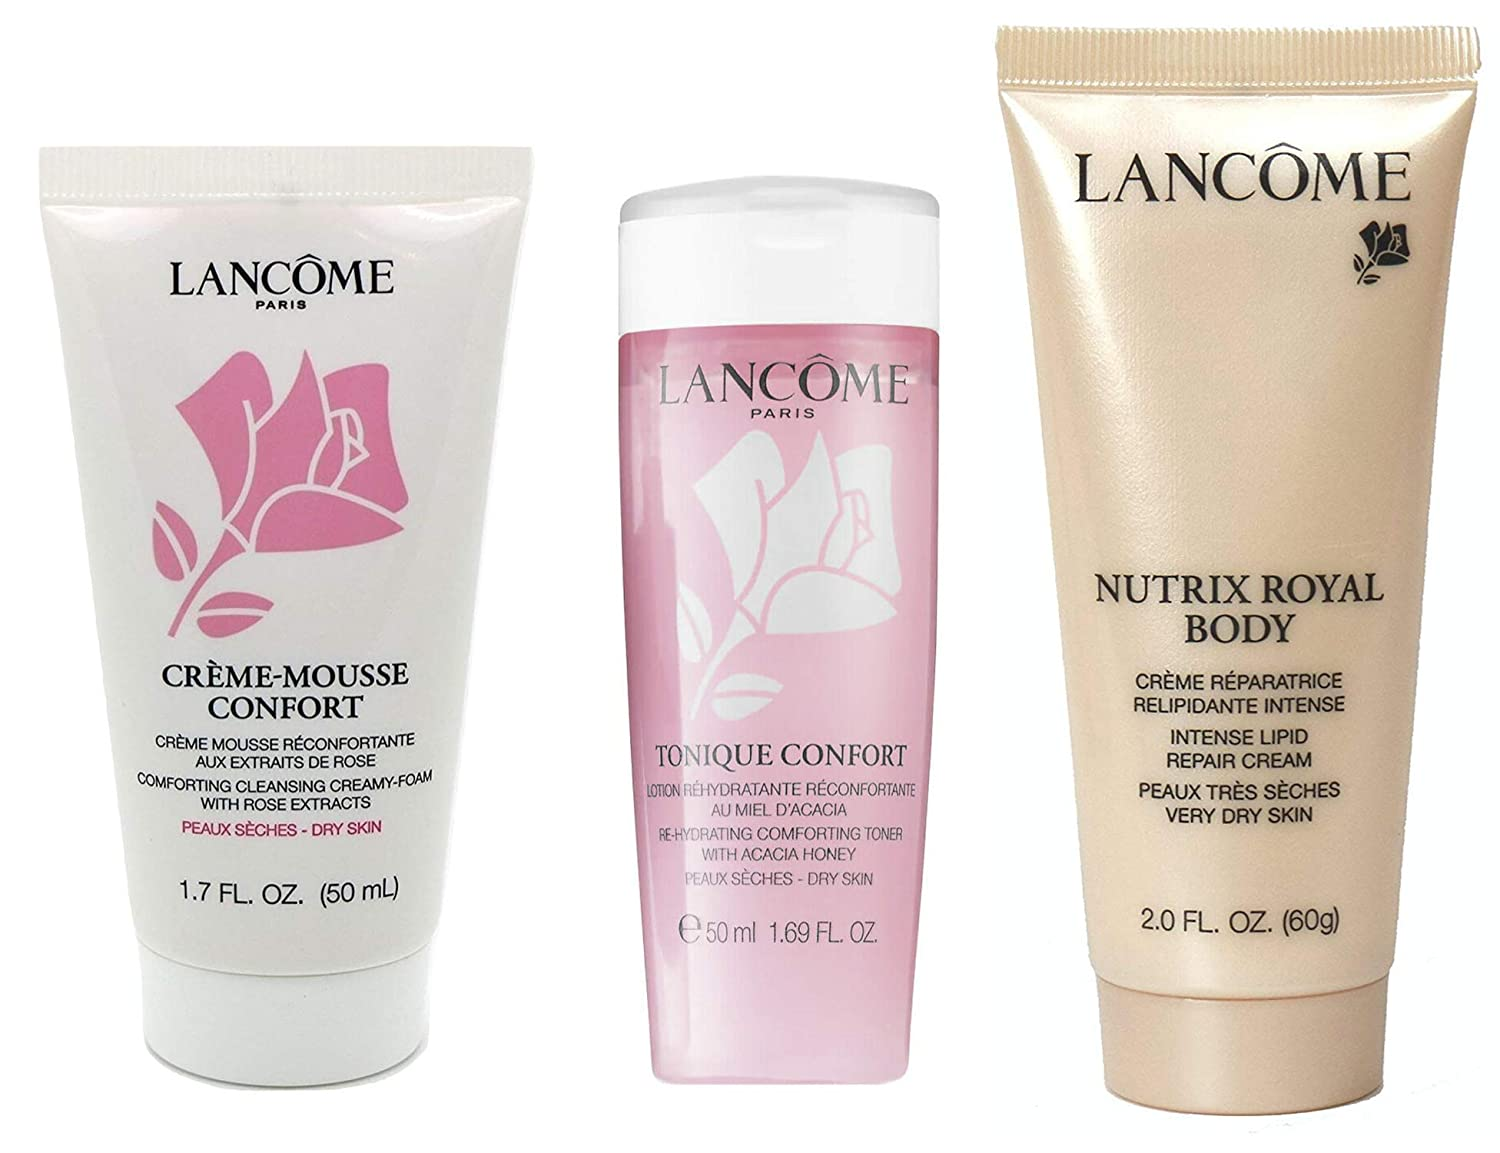 Lancome Skincare 3-Piece Travel Size Set Creme Mousse Cleanser, Toner, Royal Body Cream- New